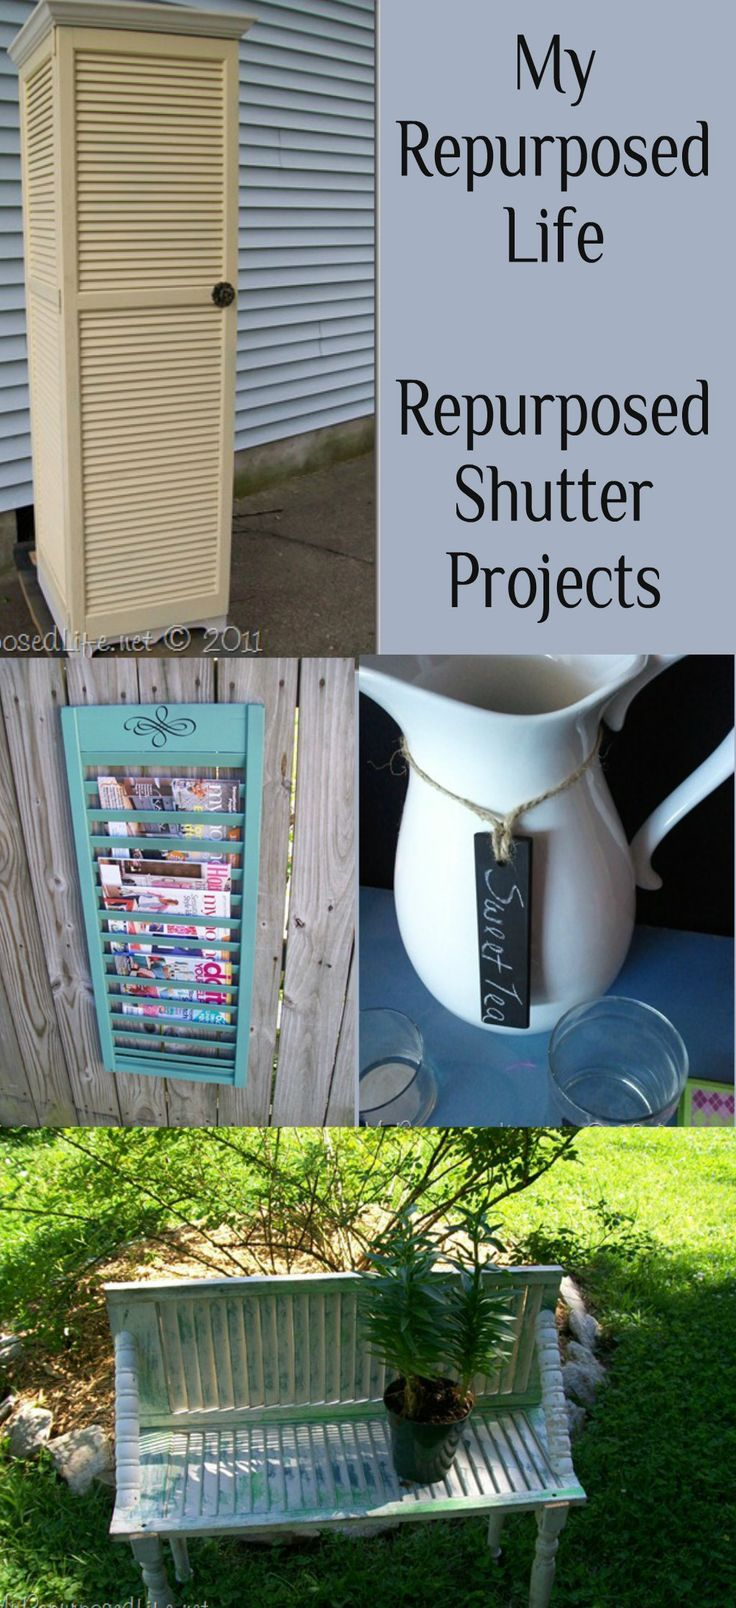 Repurposed shutters.  Visit us at www.millenniumwasteinc.com for more information about recycling.